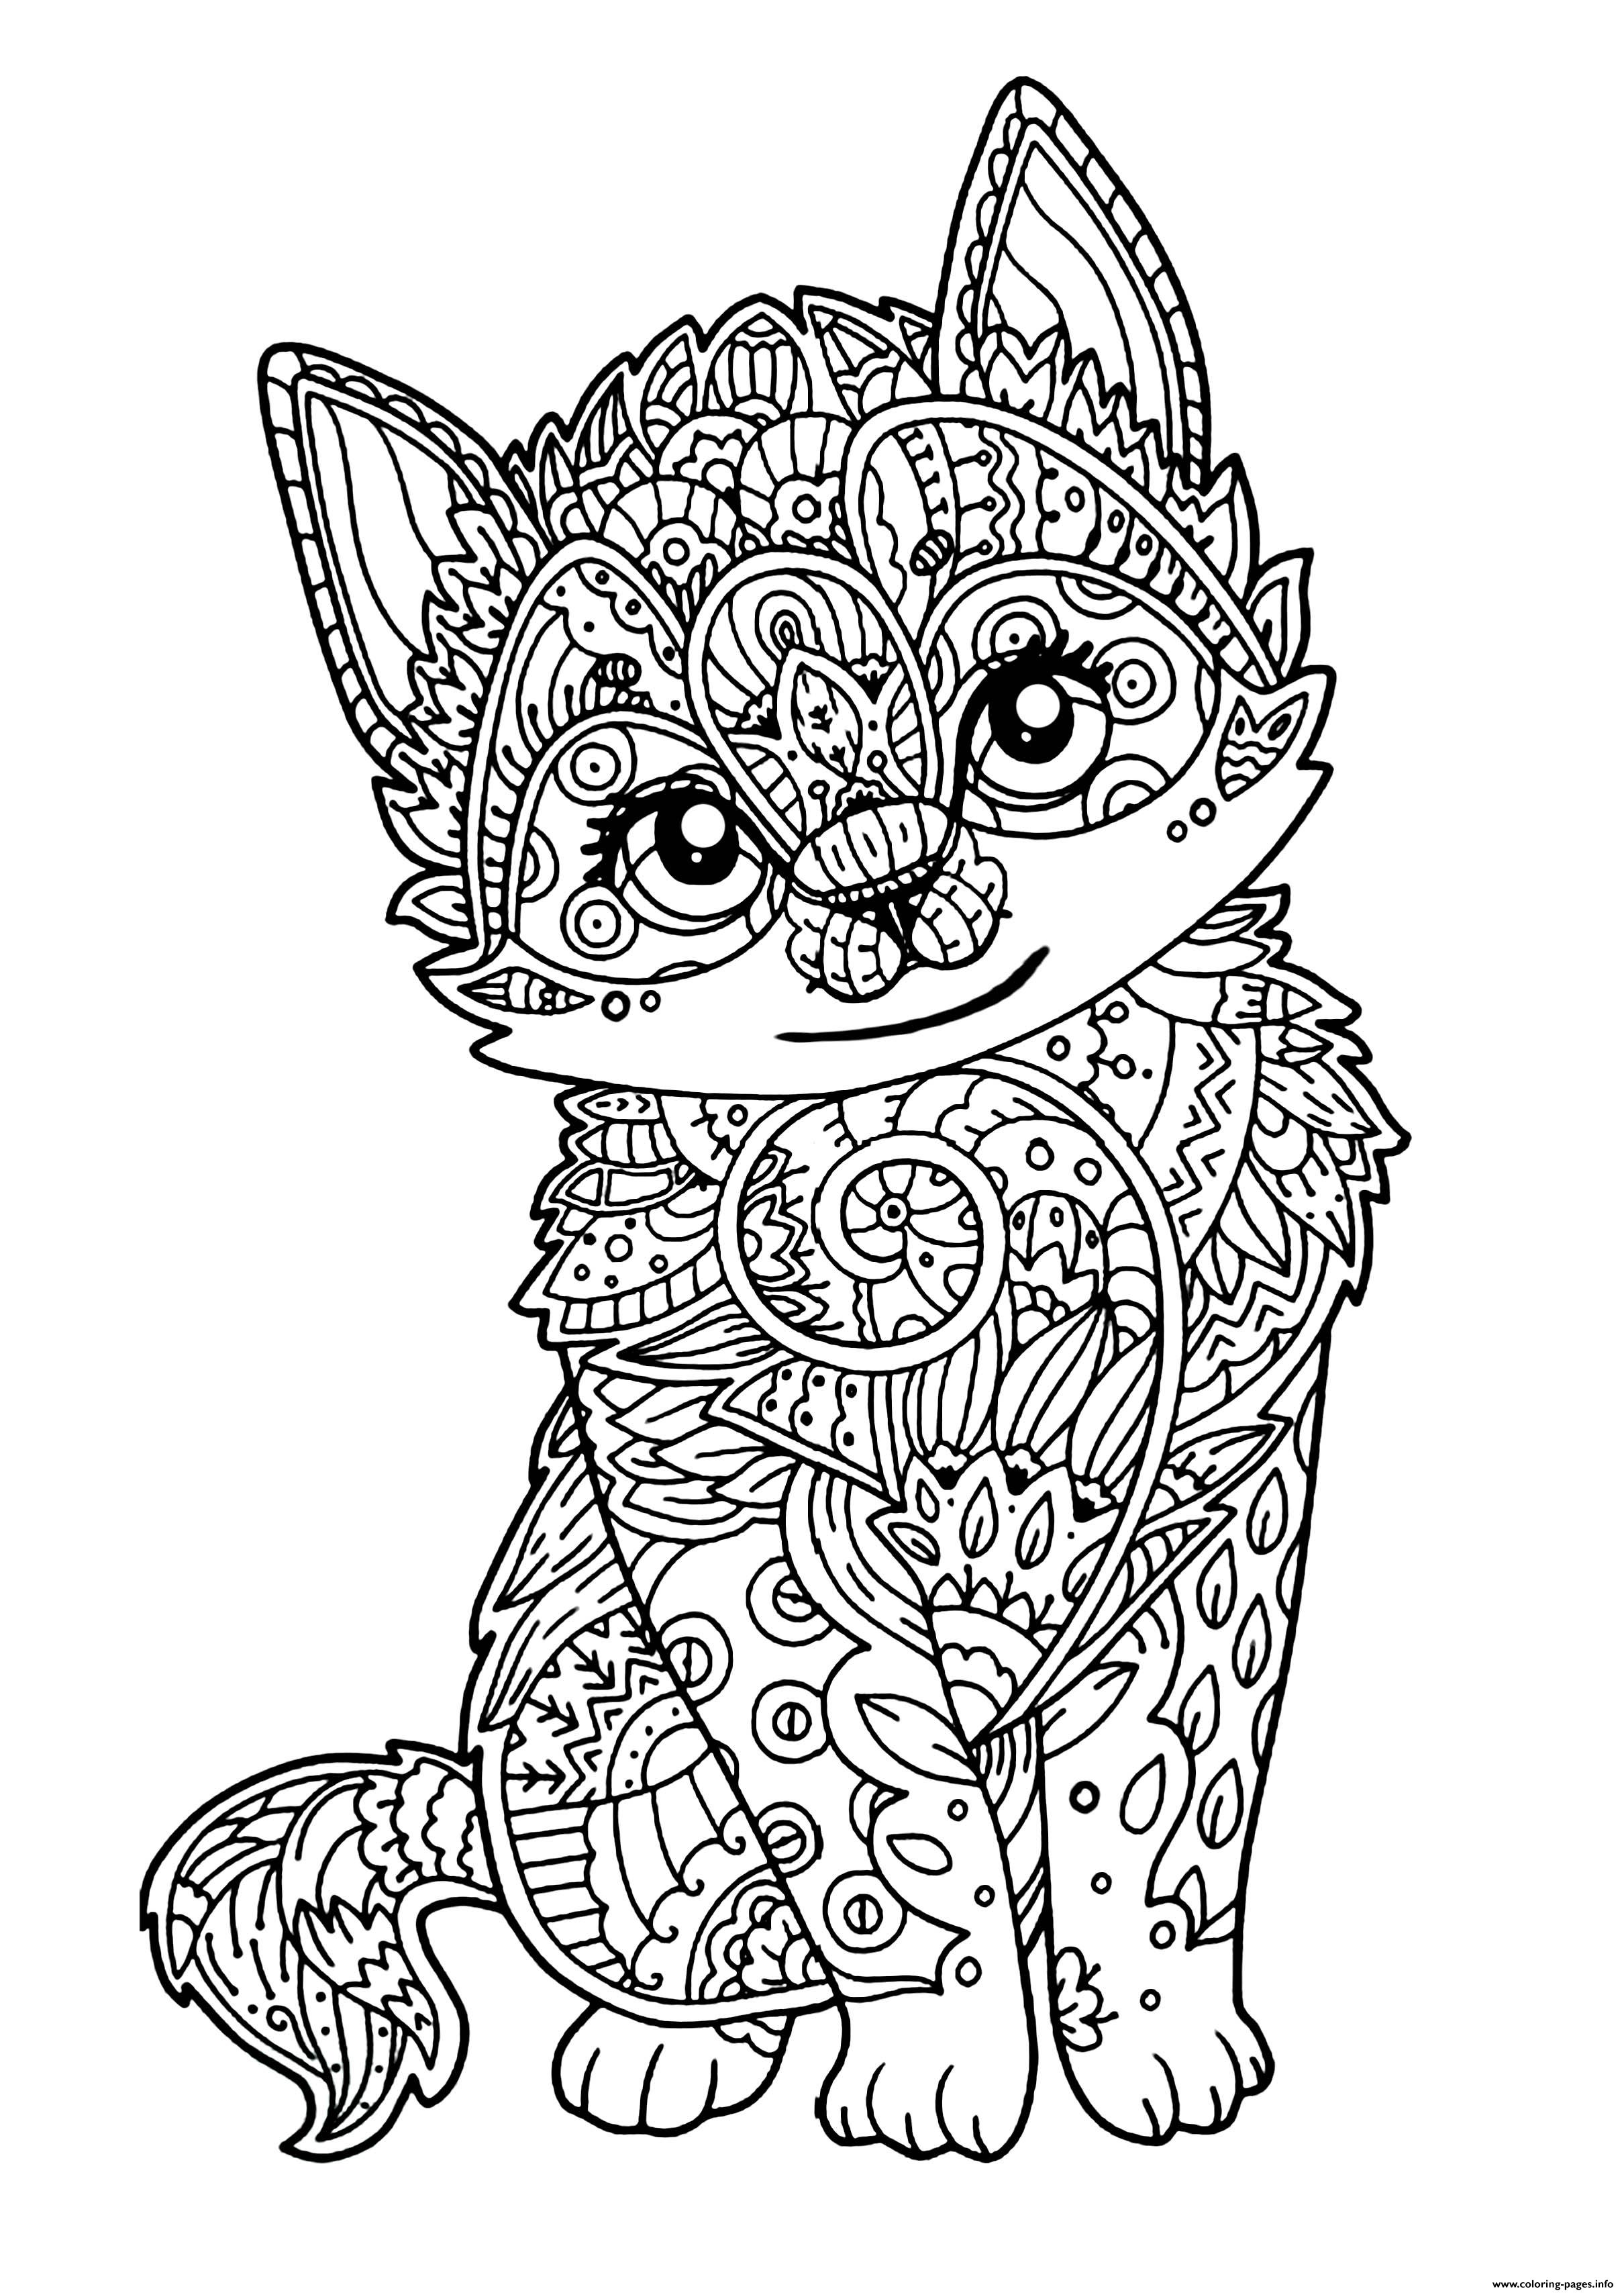 zentangle coloring pages free printable owl and butterflies in zentangle black flower creative coloring pages free printable zentangle